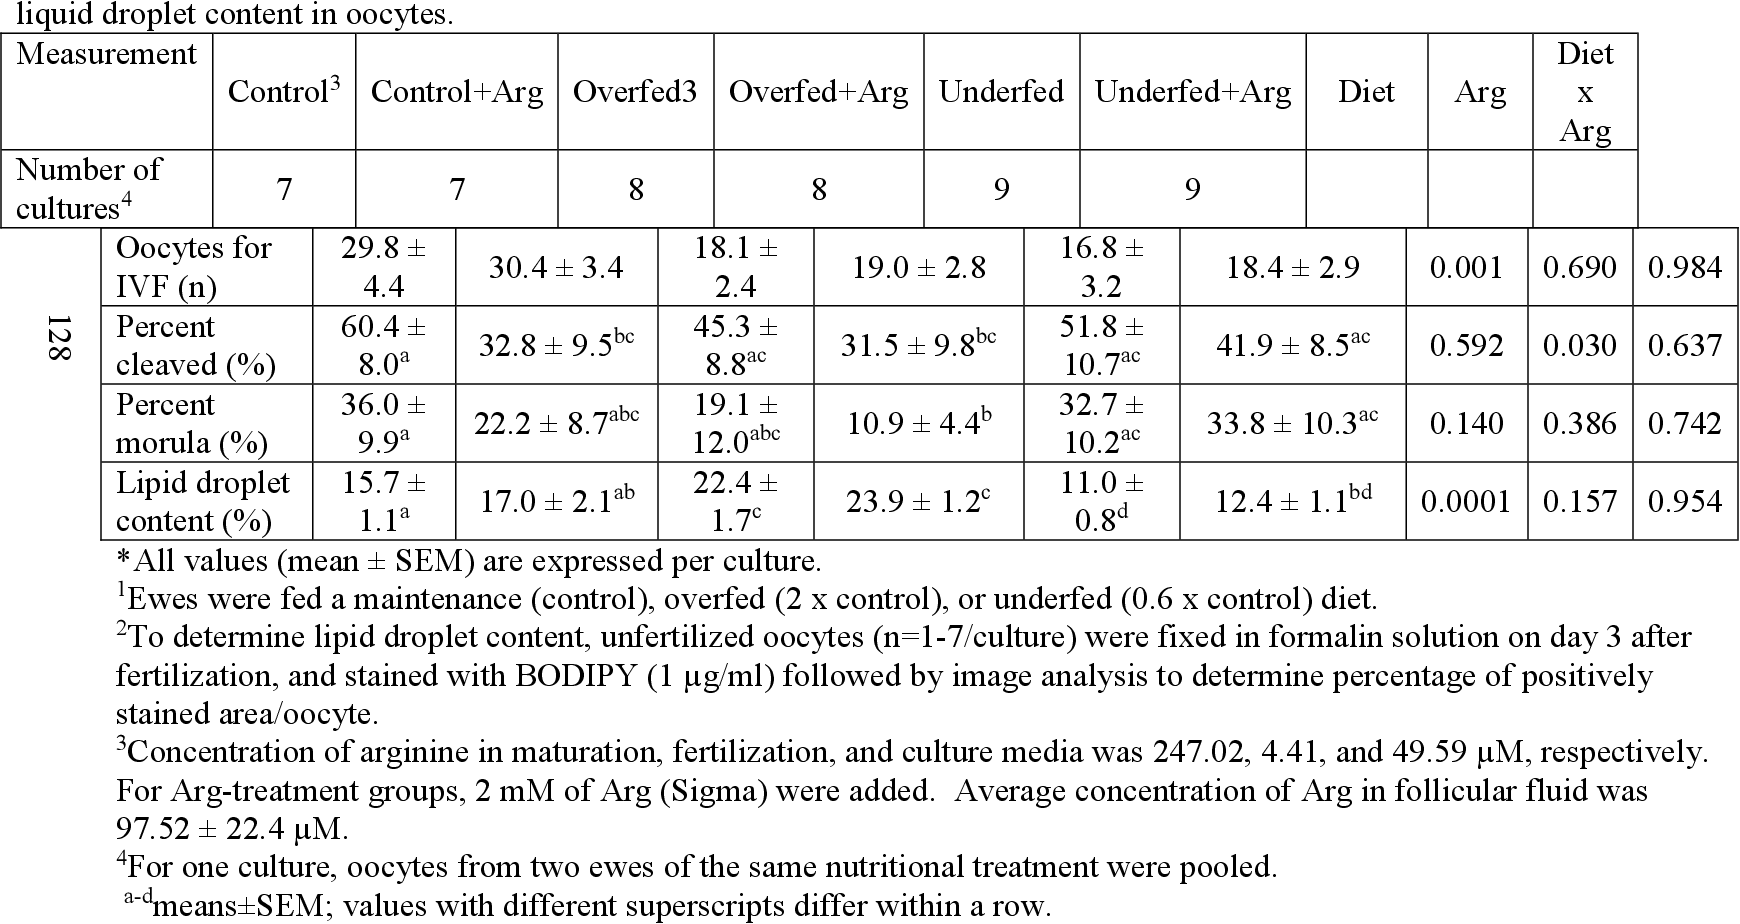 Table 3.2. Effects of nutritional plane and arginine (Arg) or saline (Sal) treatment on cleavage and morula rates, and liquid droplet content in oocytes.